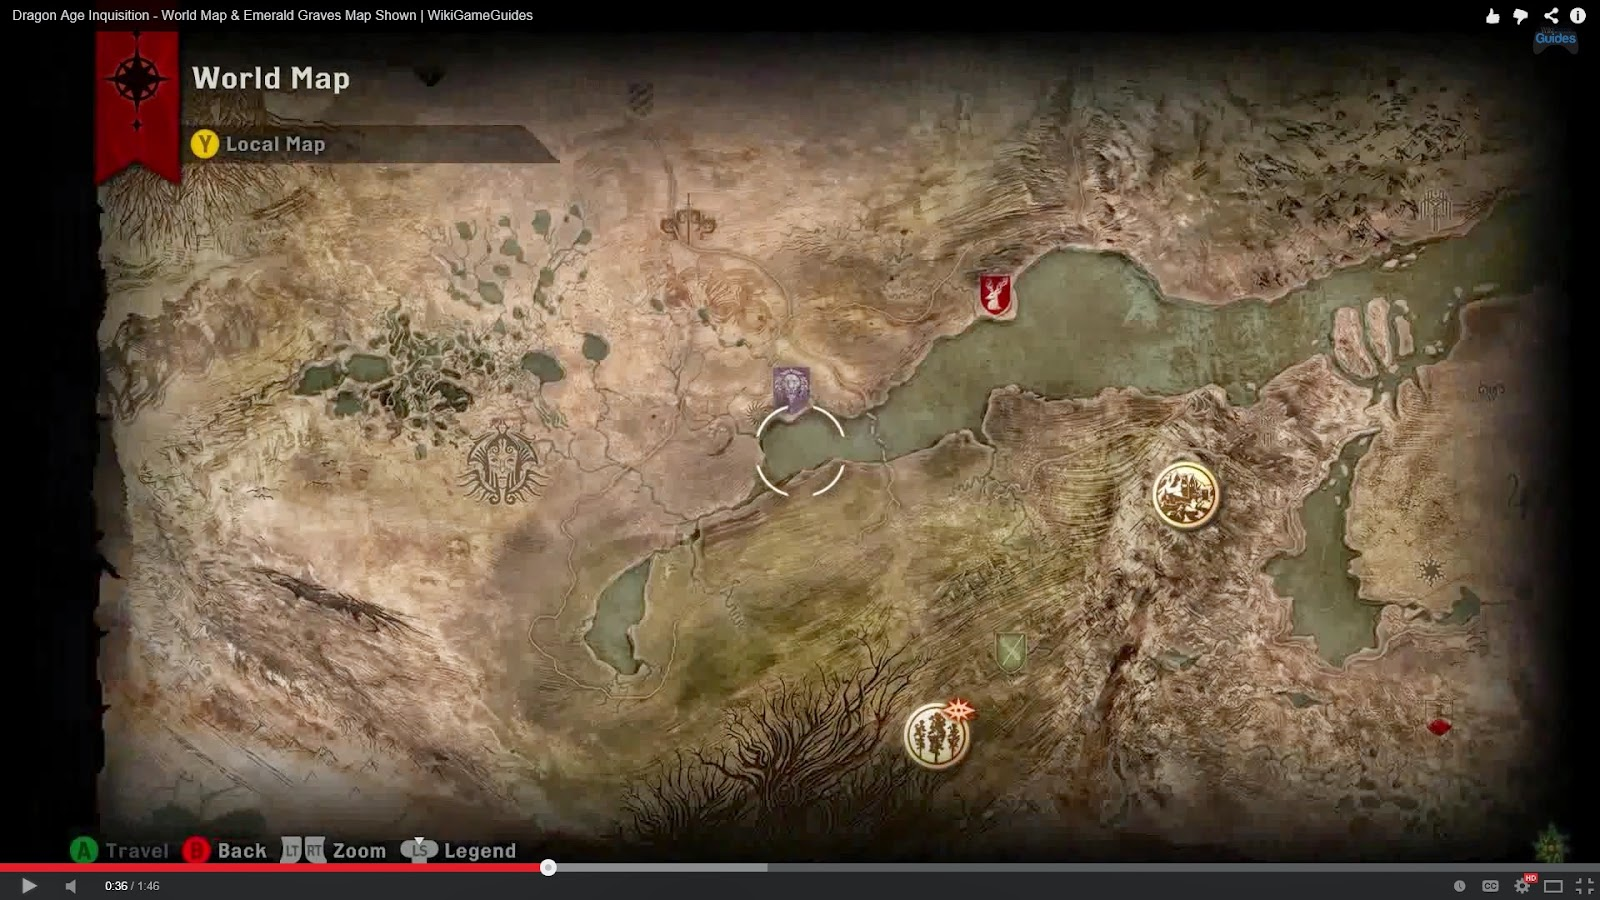 Dragon Age Inquisition World Map dragonage